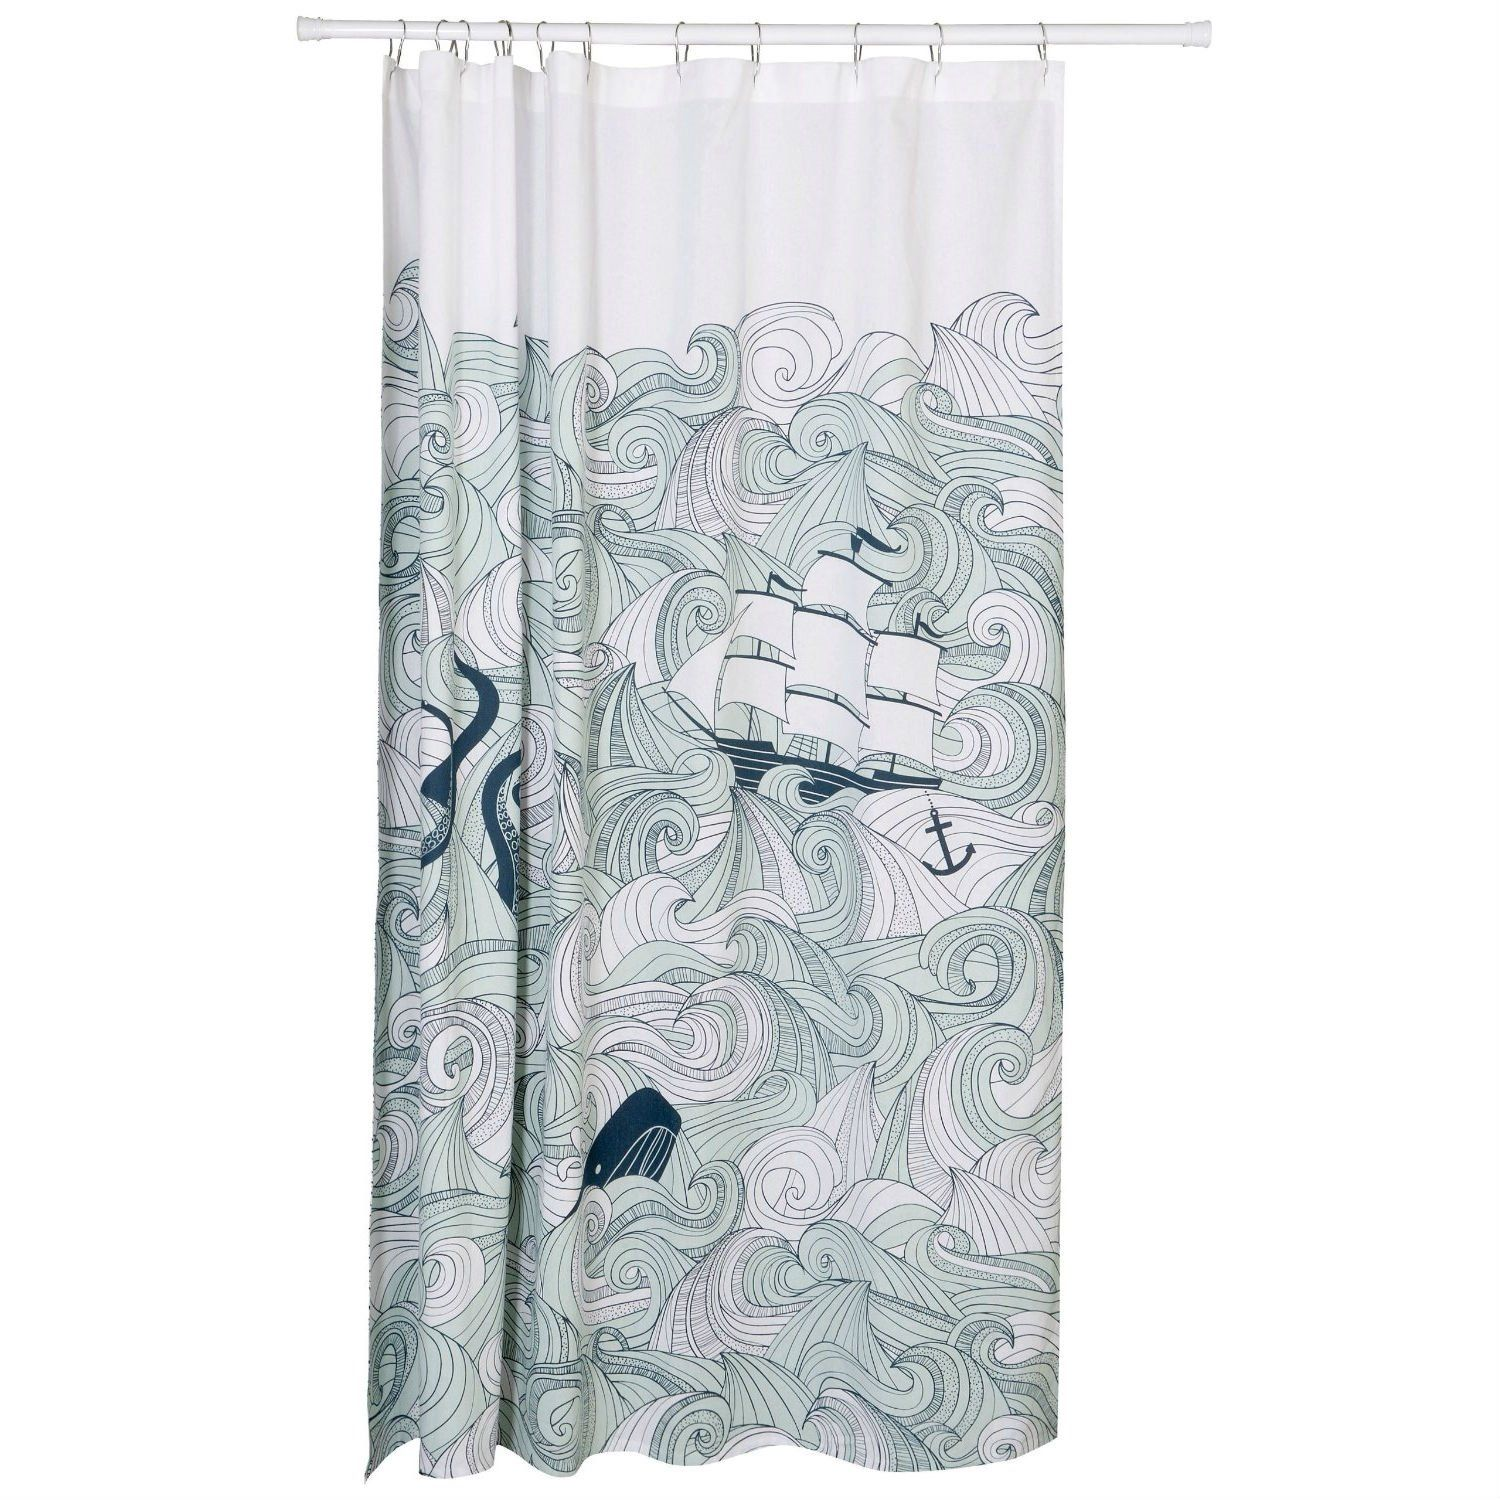 Cotton Shower Curtain With Waves Ship Anchor Octopus Mermaid